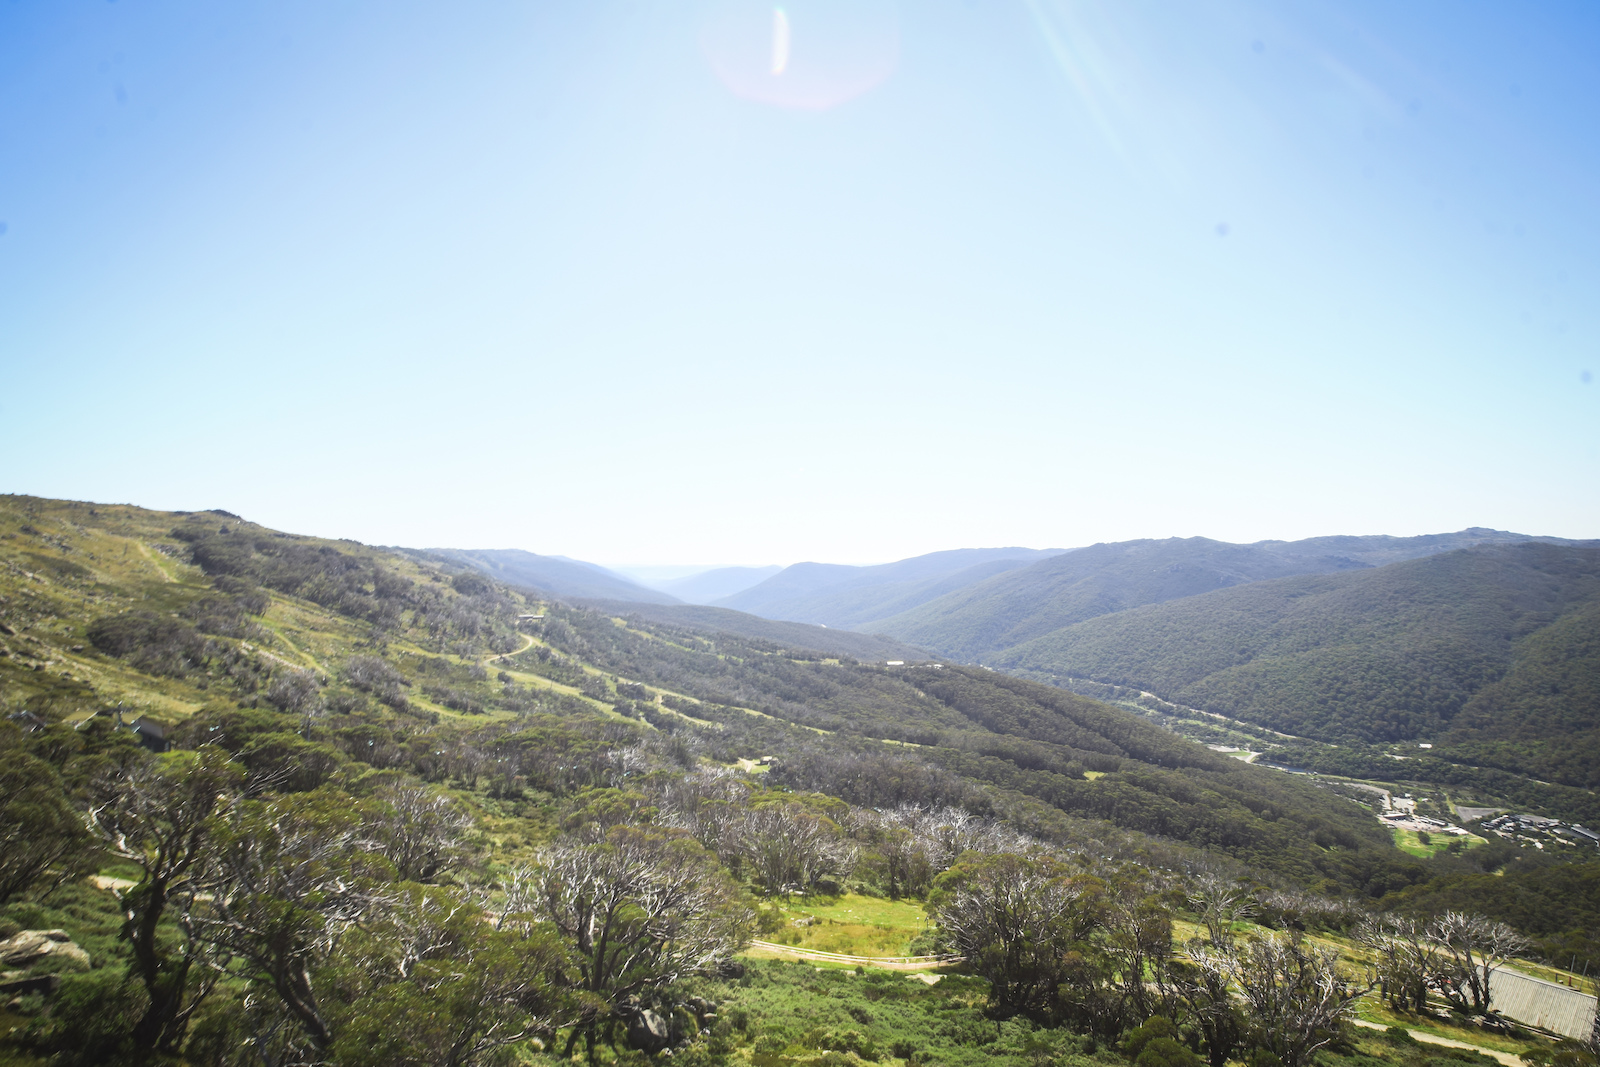 The beautiful Thredbo Valley home to out race course for the weekend.